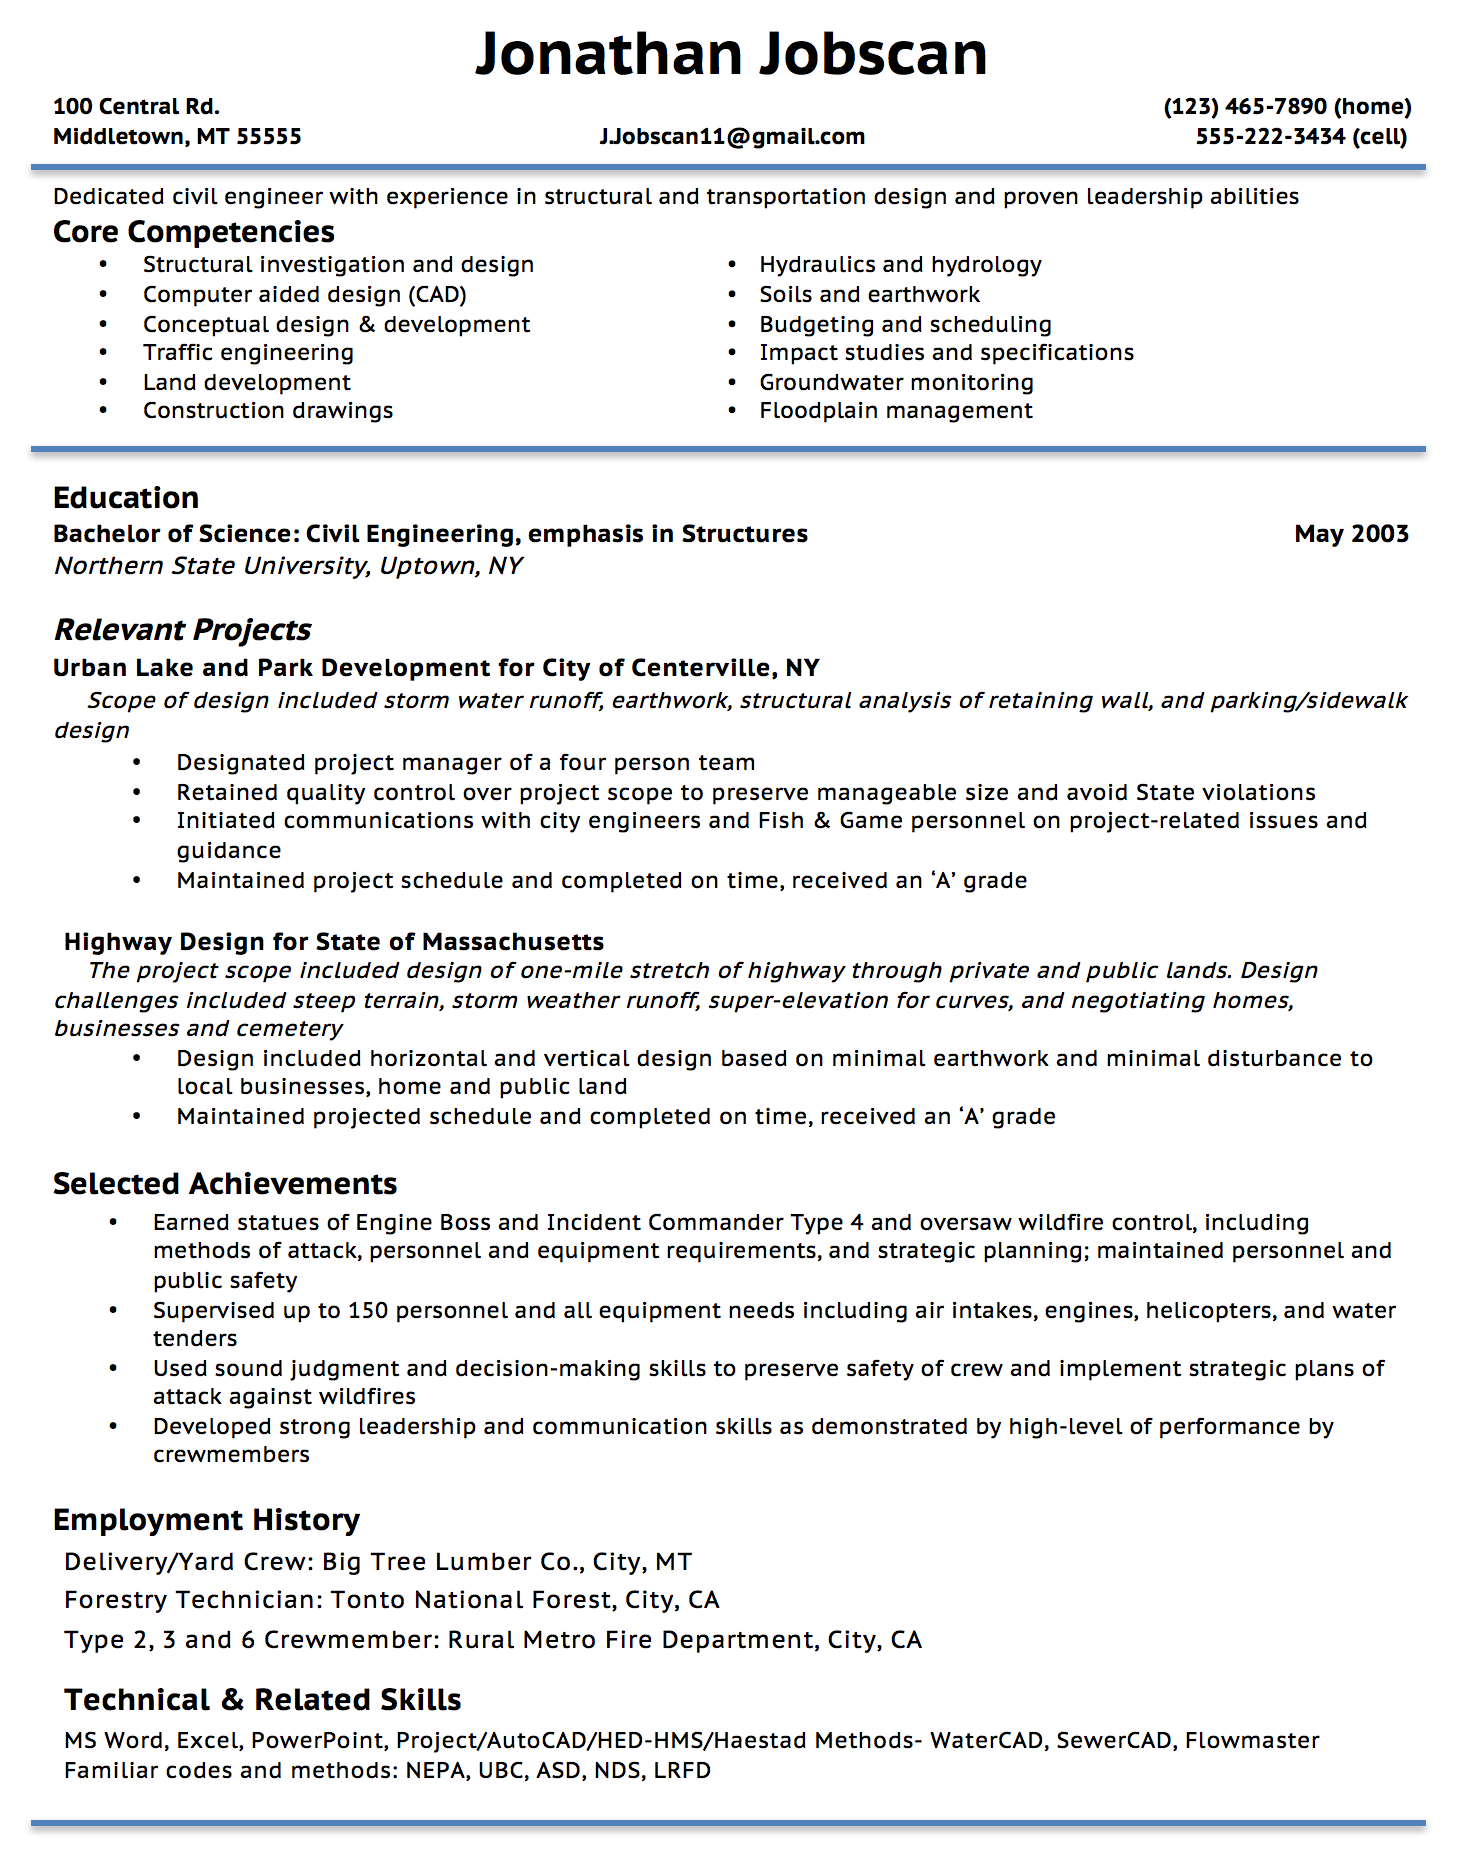 Opposenewapstandardsus  Marvelous Resume Writing Guide  Jobscan With Luxury Example Of A Functional Resume Format With Adorable Resume Experience Order Also Resumes That Get Noticed In Addition How To Include References In Resume And French Resume As Well As Stocker Resume Additionally Resume In Latex From Jobscanco With Opposenewapstandardsus  Luxury Resume Writing Guide  Jobscan With Adorable Example Of A Functional Resume Format And Marvelous Resume Experience Order Also Resumes That Get Noticed In Addition How To Include References In Resume From Jobscanco